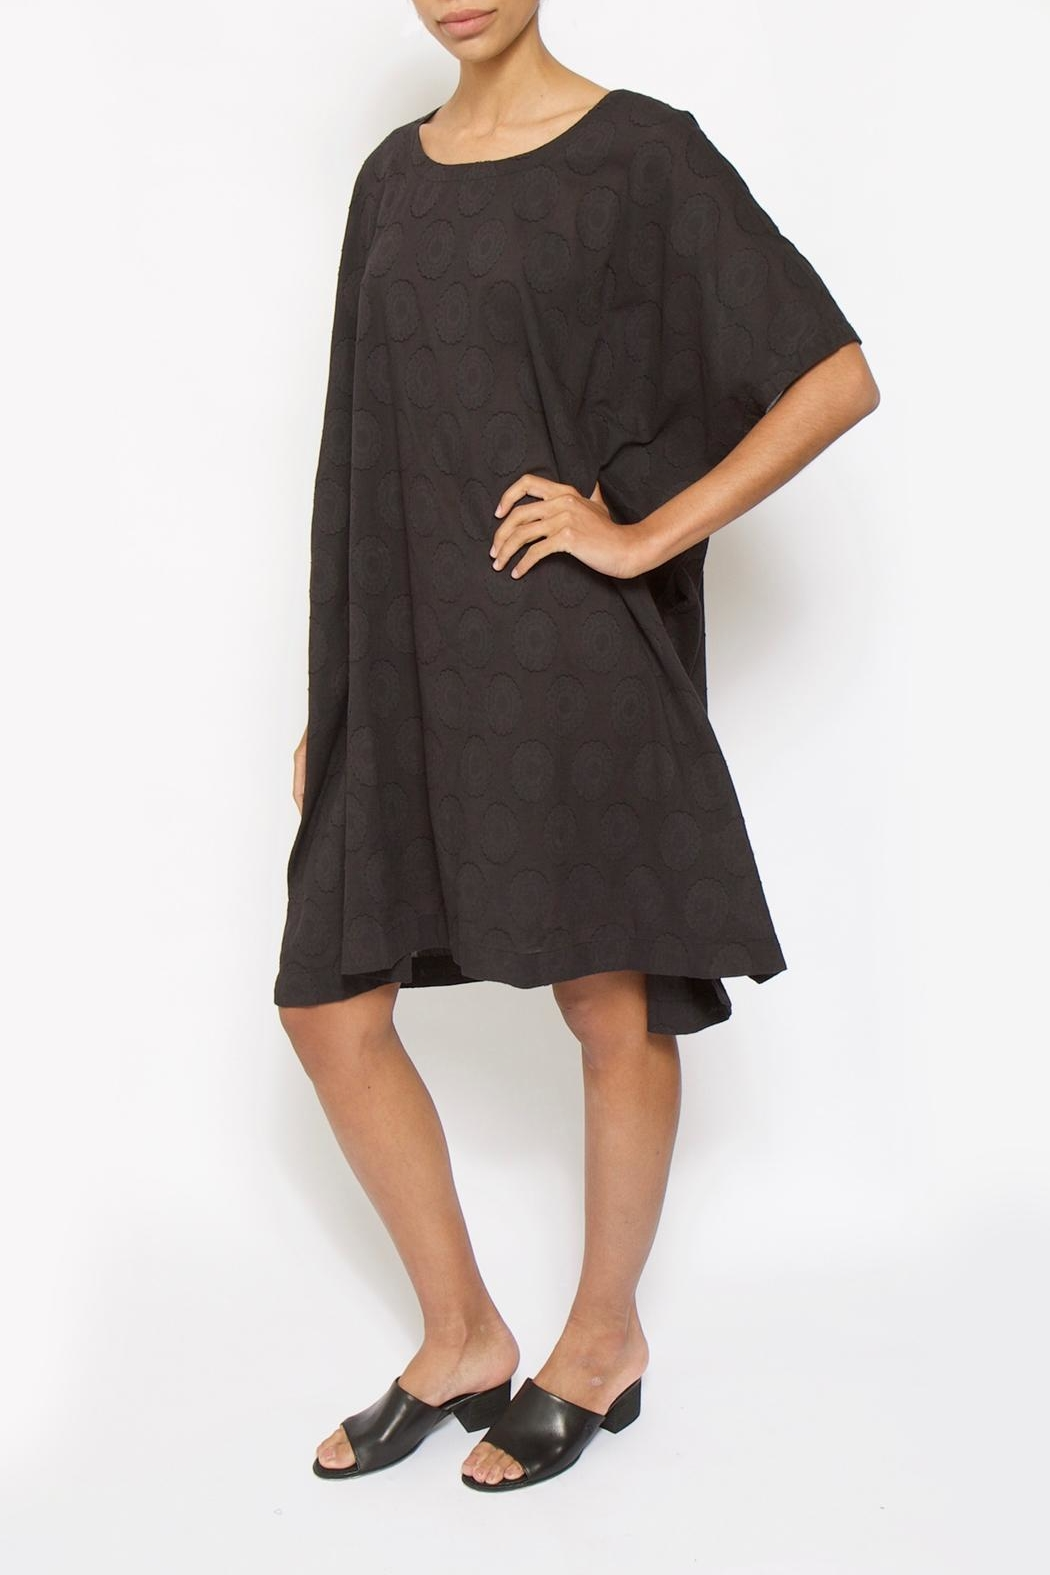 Moyuru Black Dot Dress - Front Cropped Image